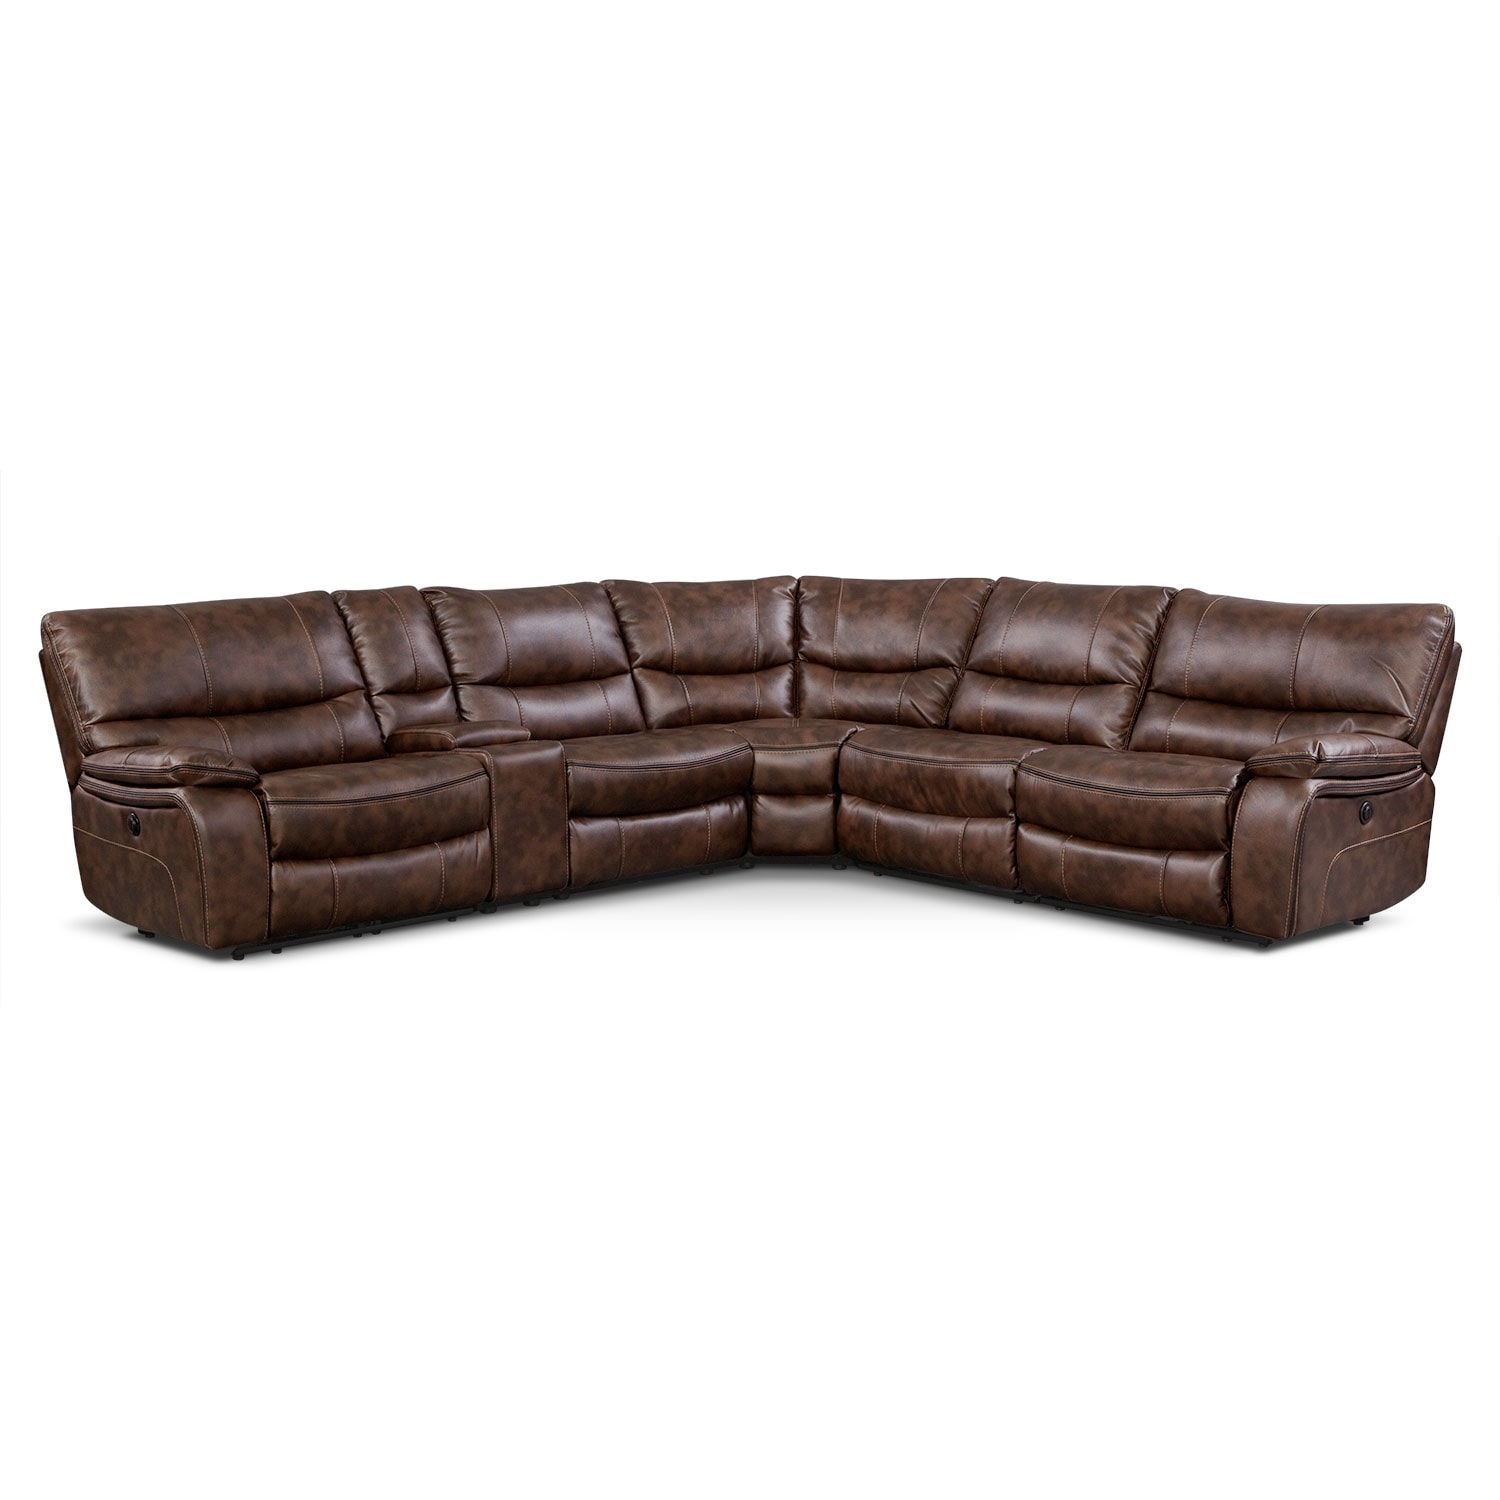 Living Room Furniture - Orlando 6-Piece Power Reclining Sectional w/ 2 Stationary Chairs - Brown